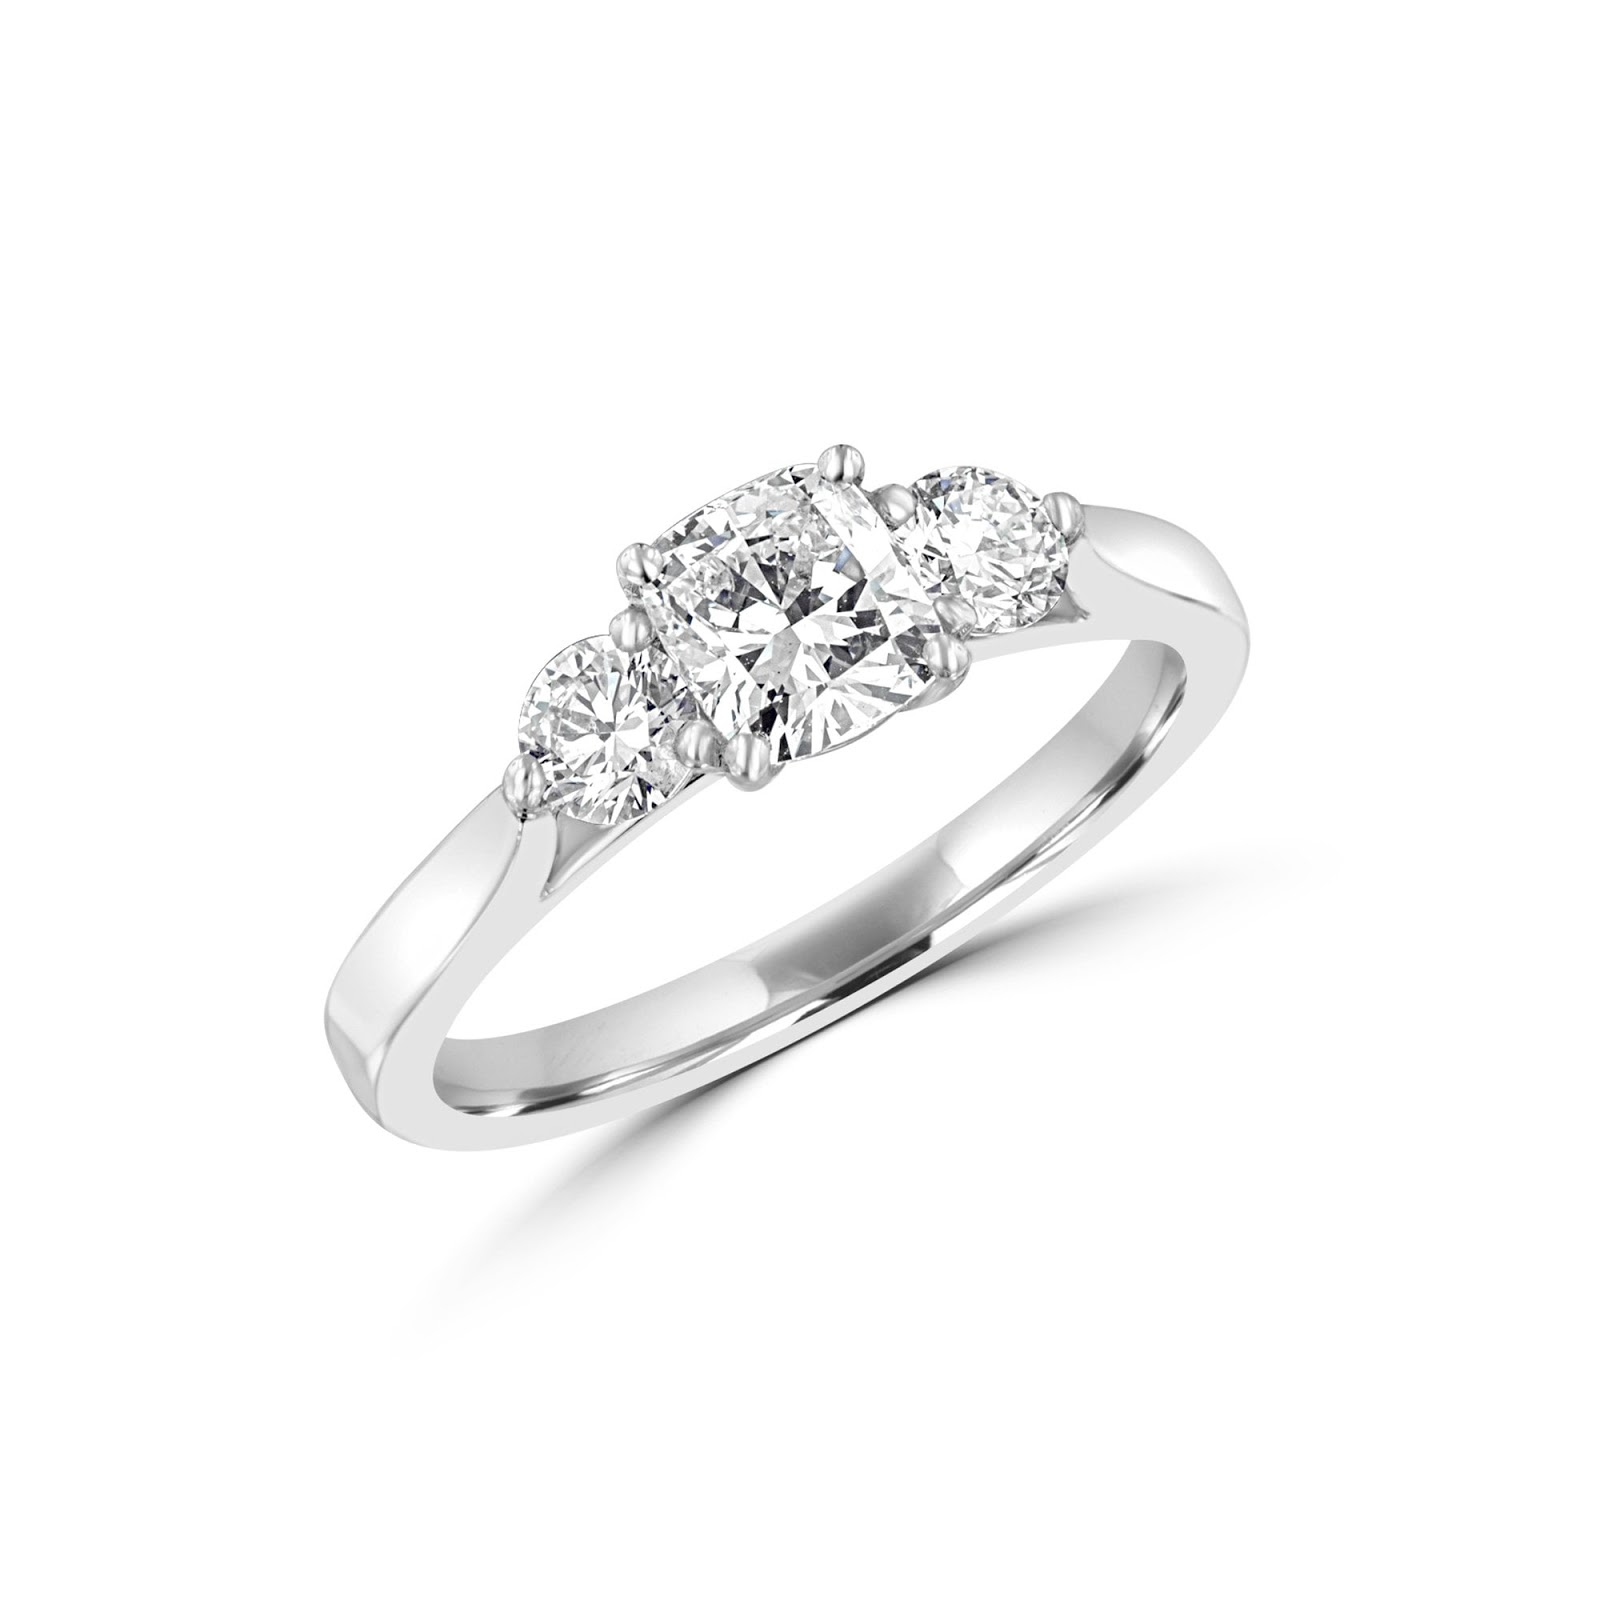 Tailor-made engagement rings: the choice of the most ...